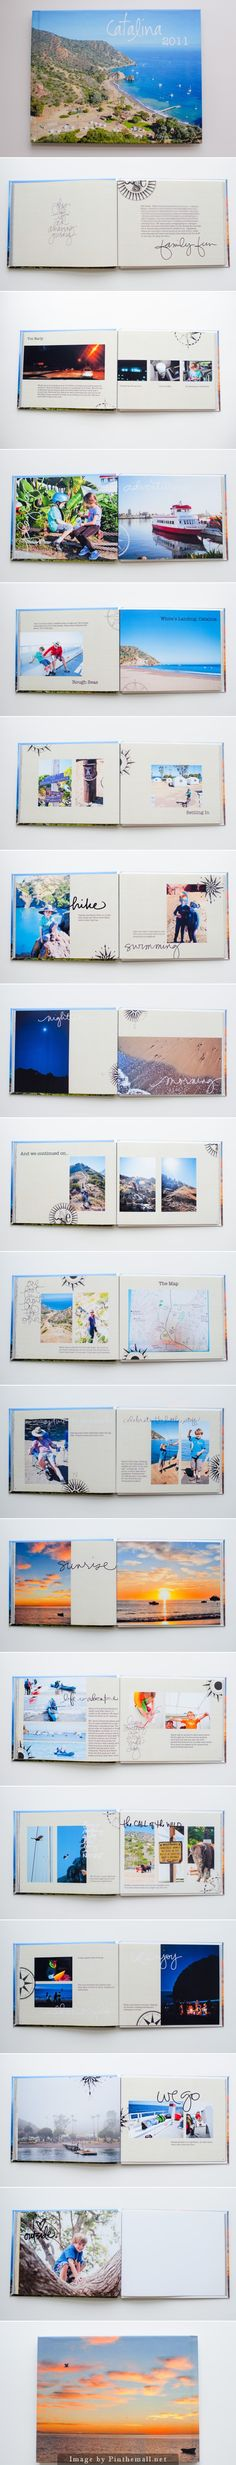 Travel Photo Book Más